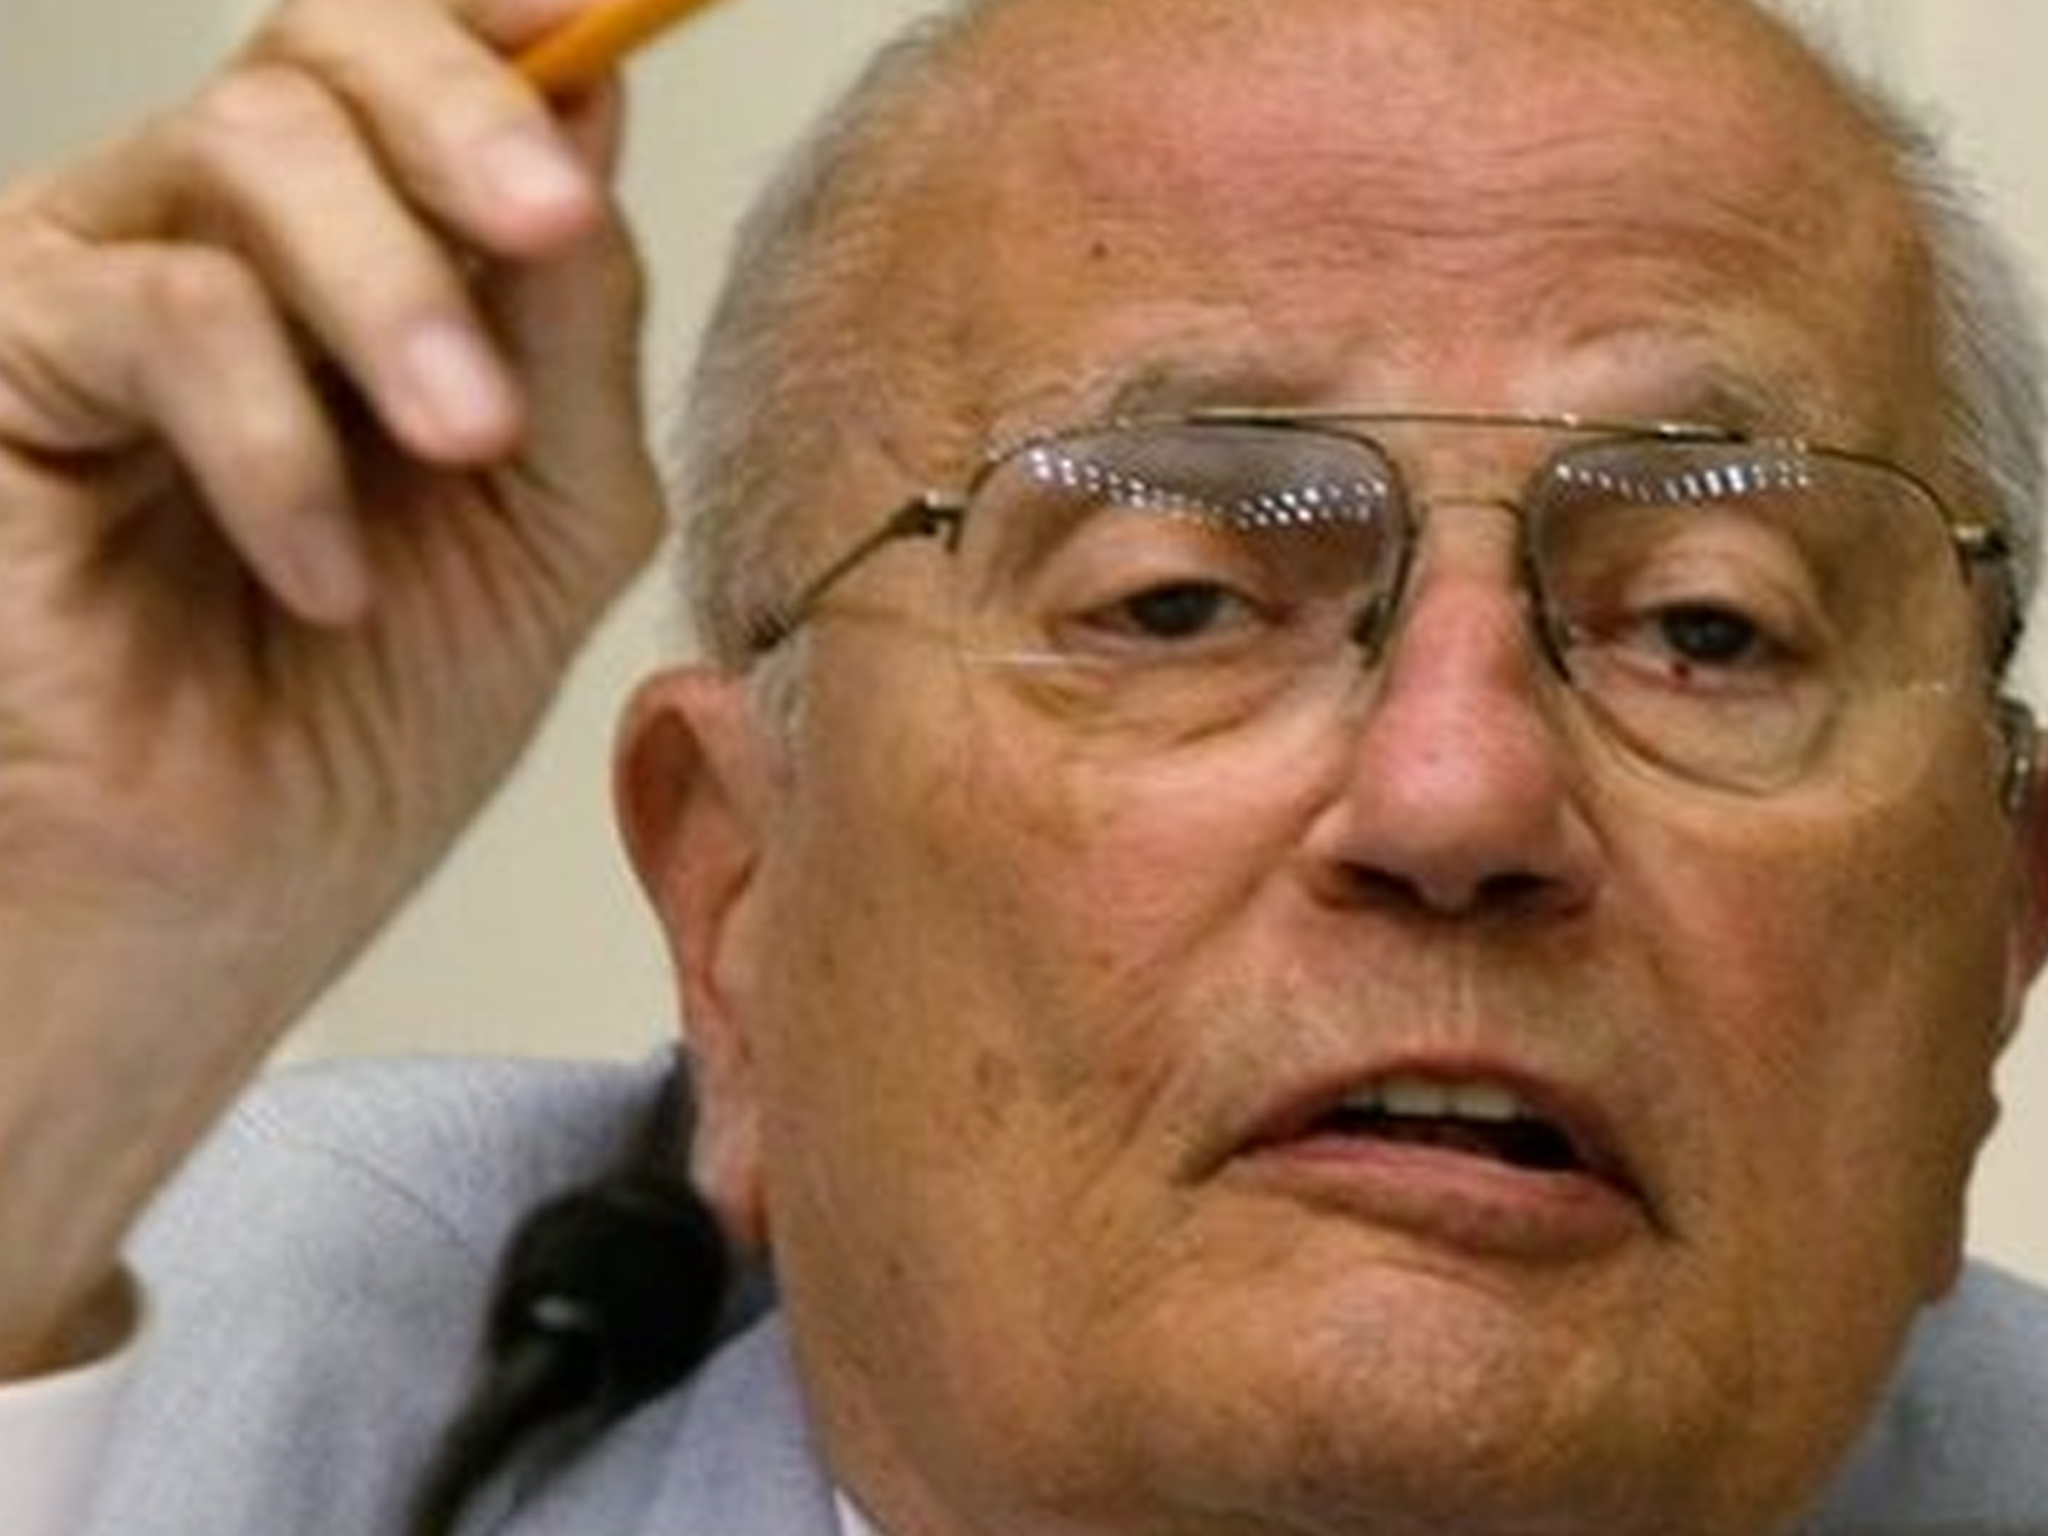 Rep. Dingell: Obamacare will eventually control the people